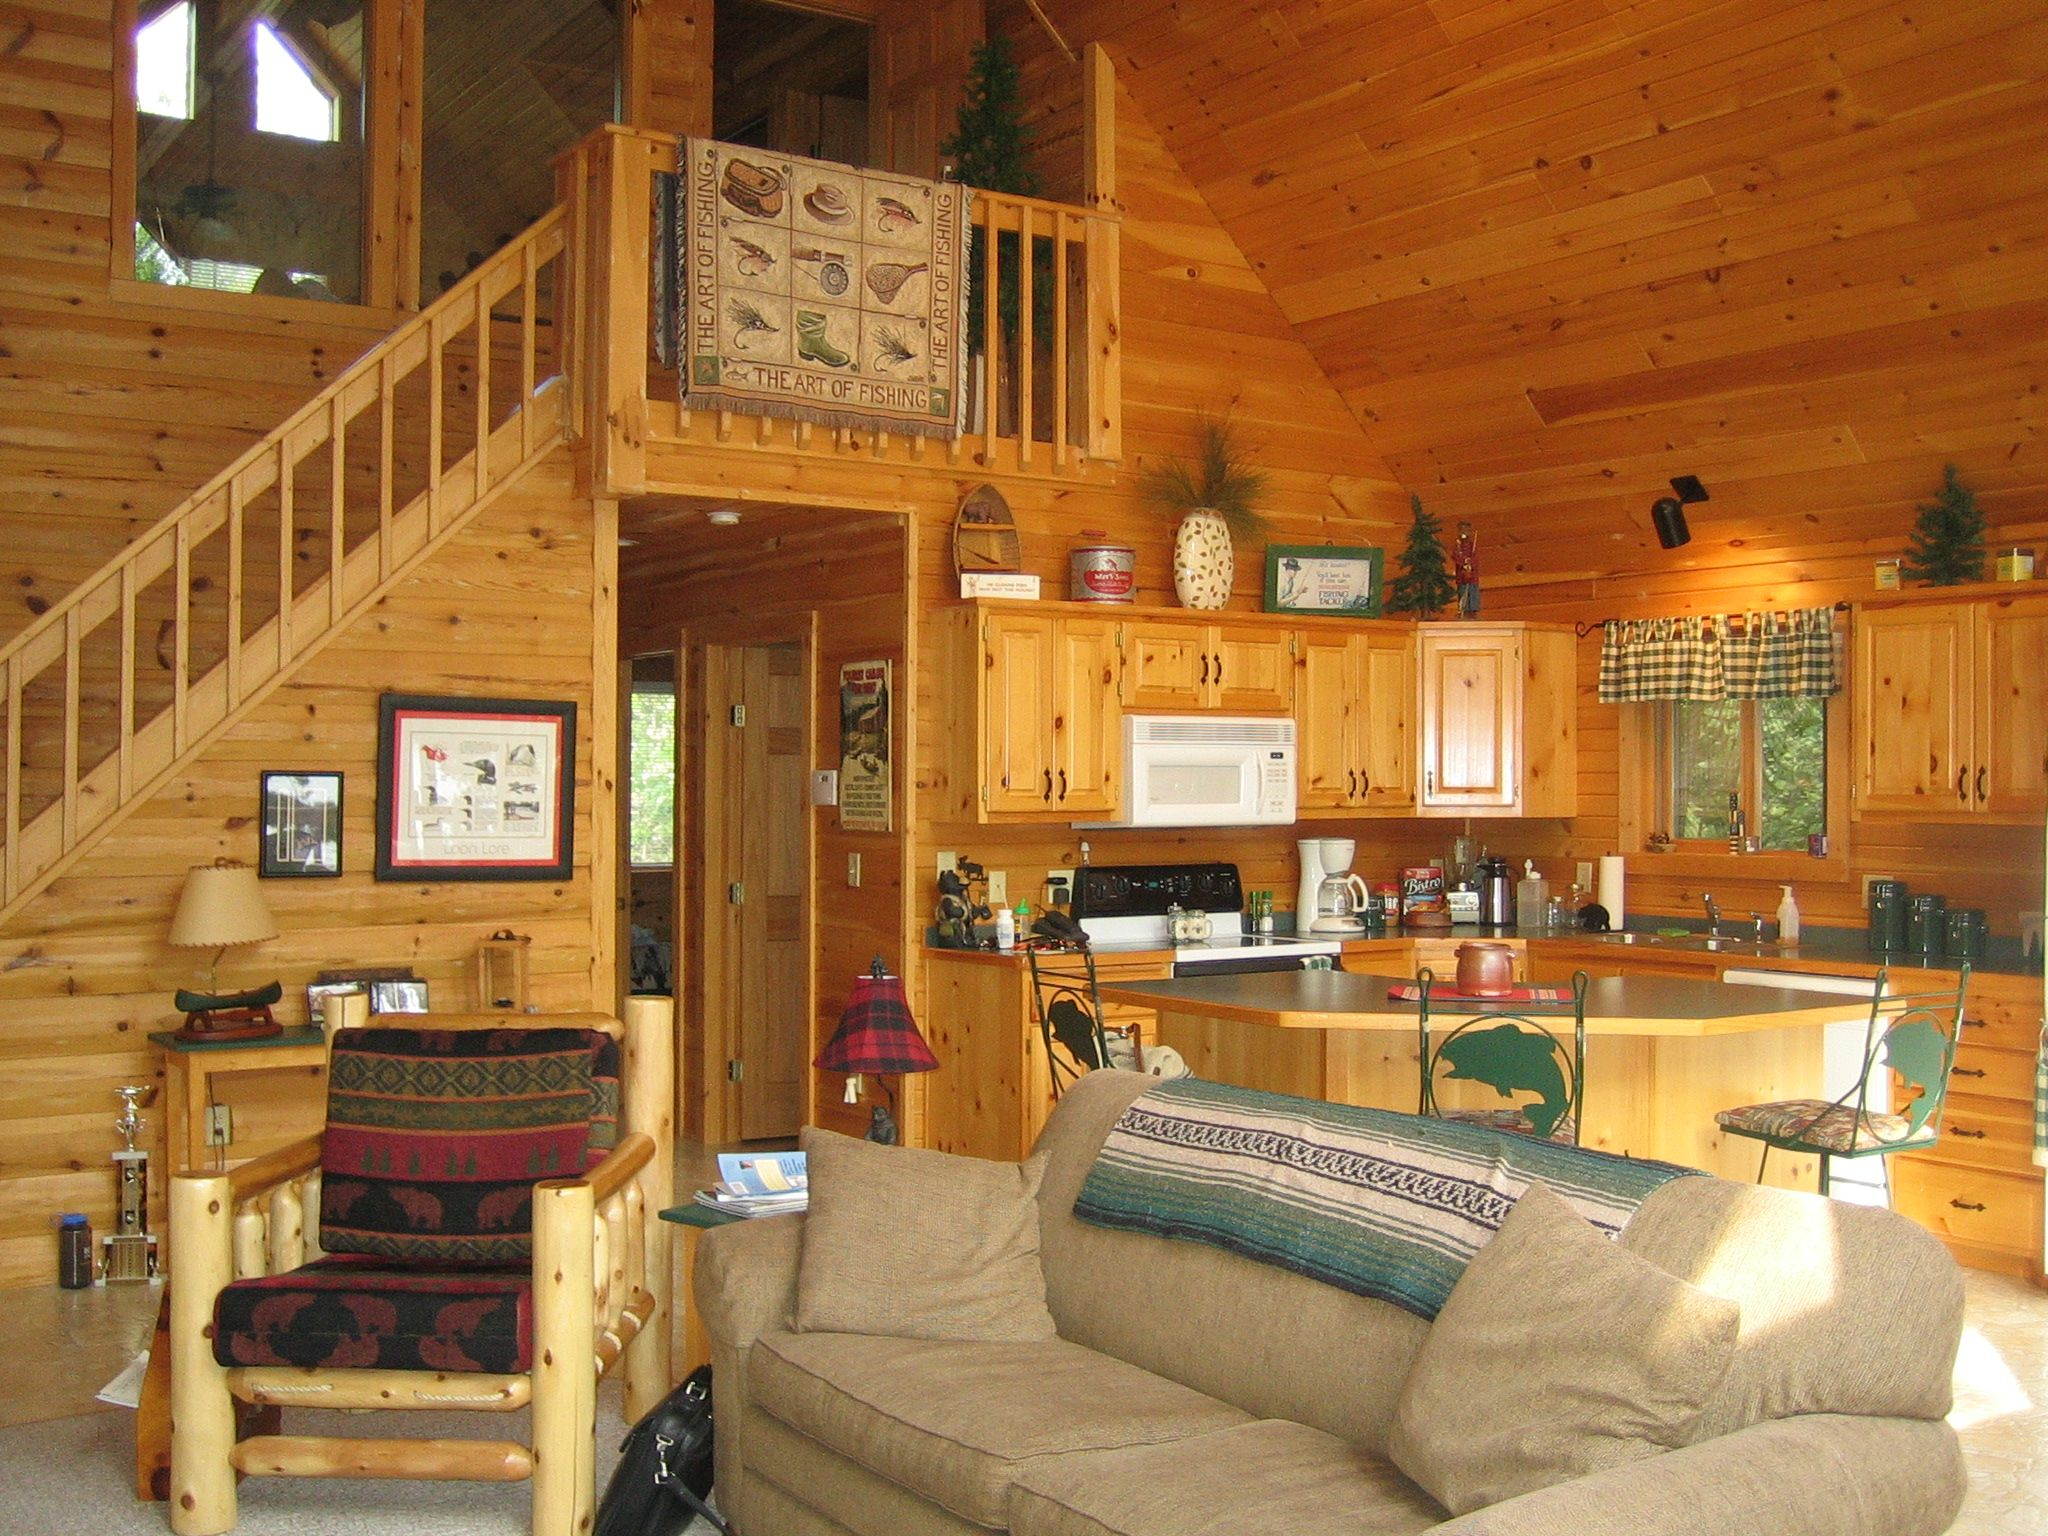 interior cabins home decor cabin loft loft interior design ideas - Cabin Interior Design Ideas